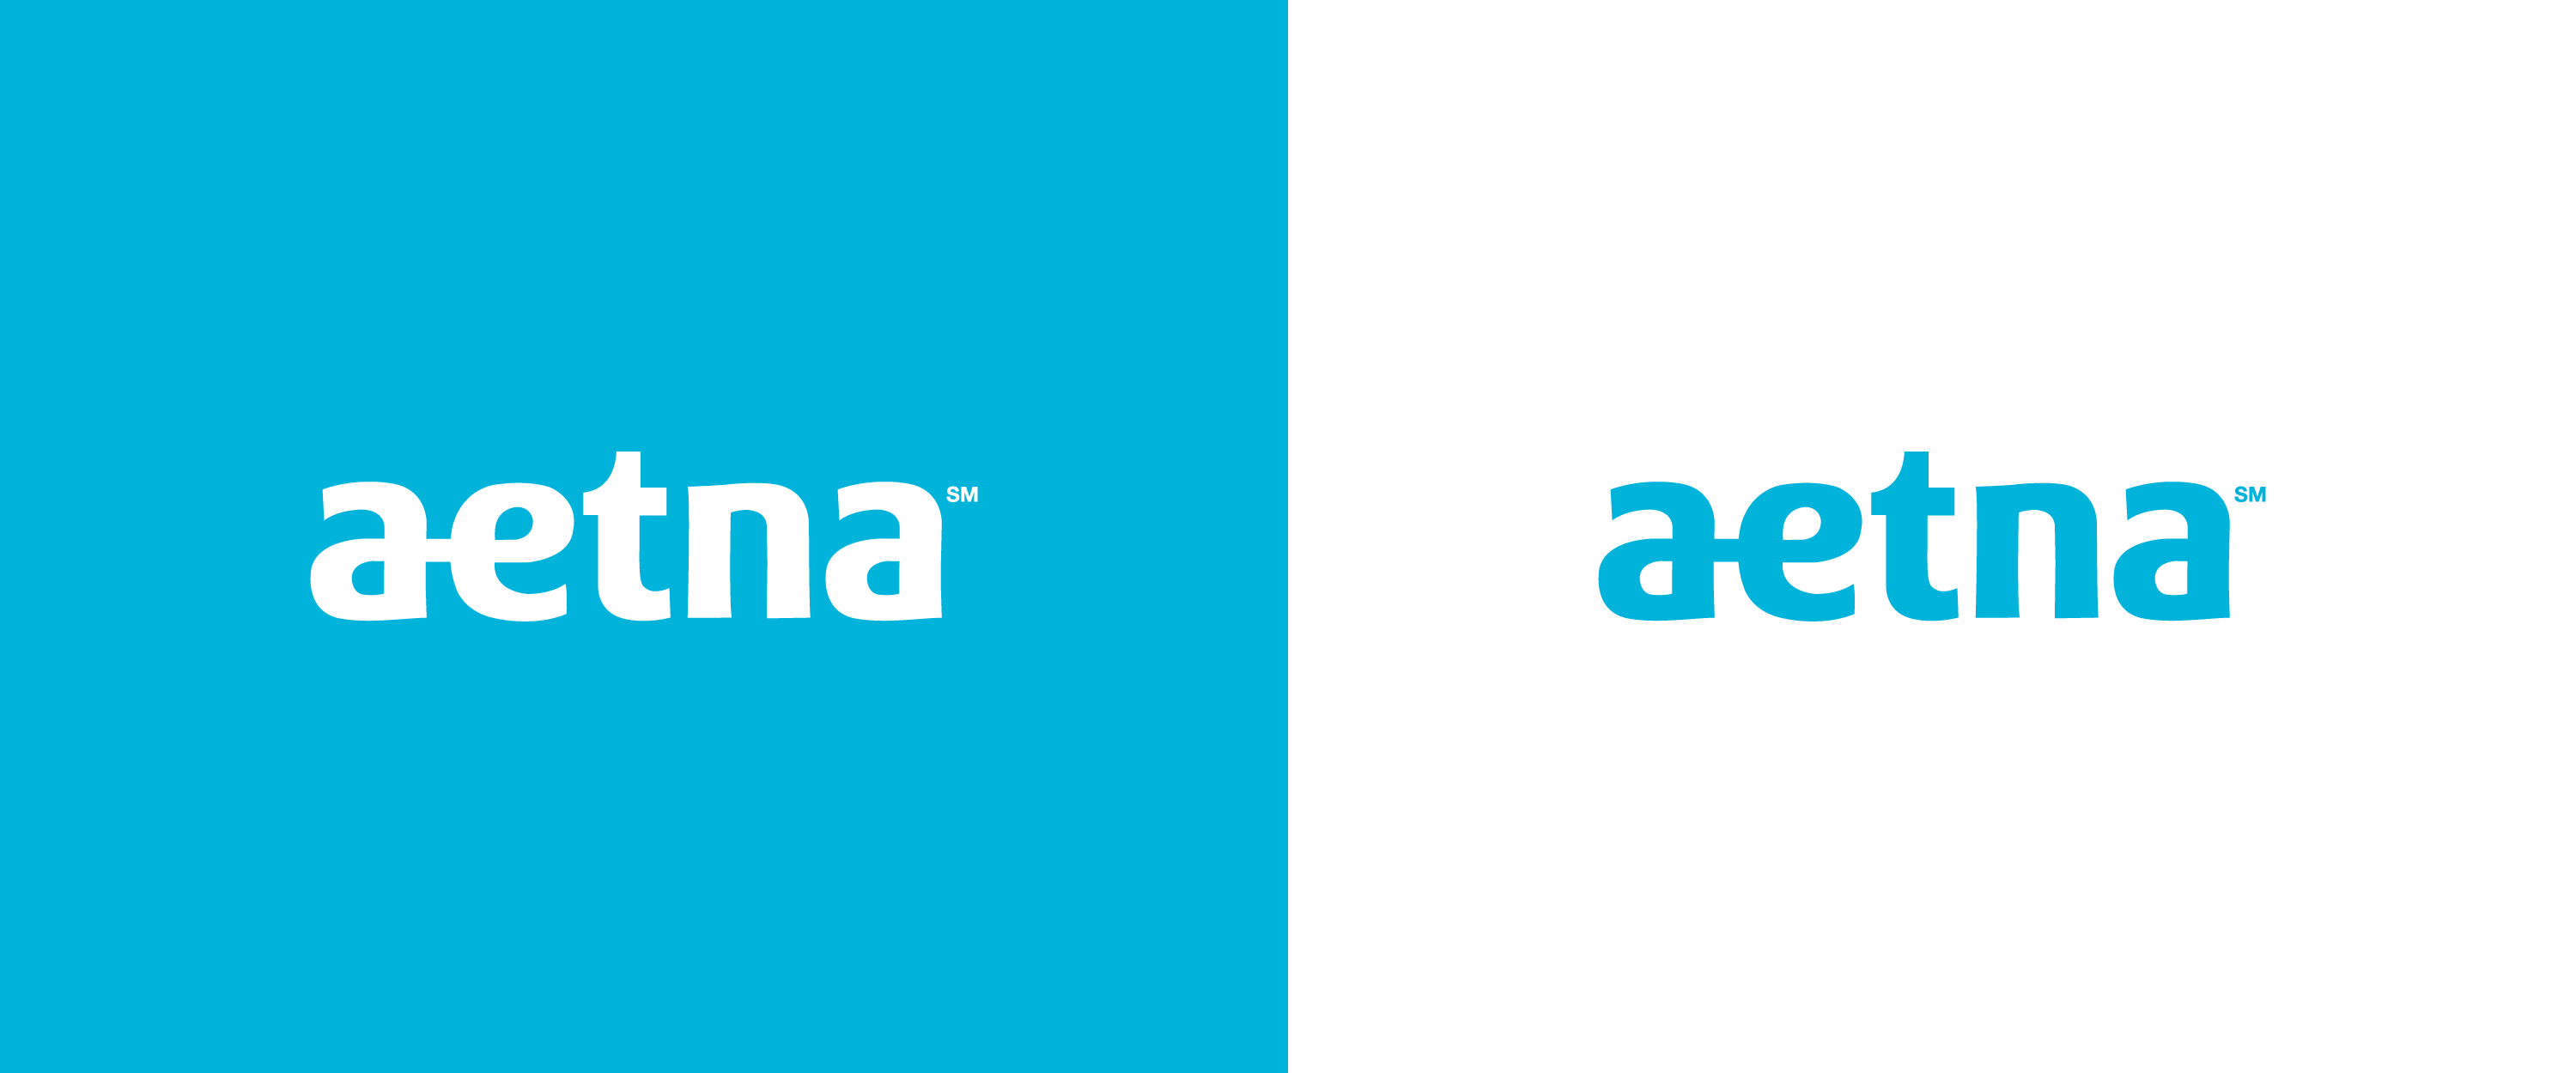 Aetna_Project2-10